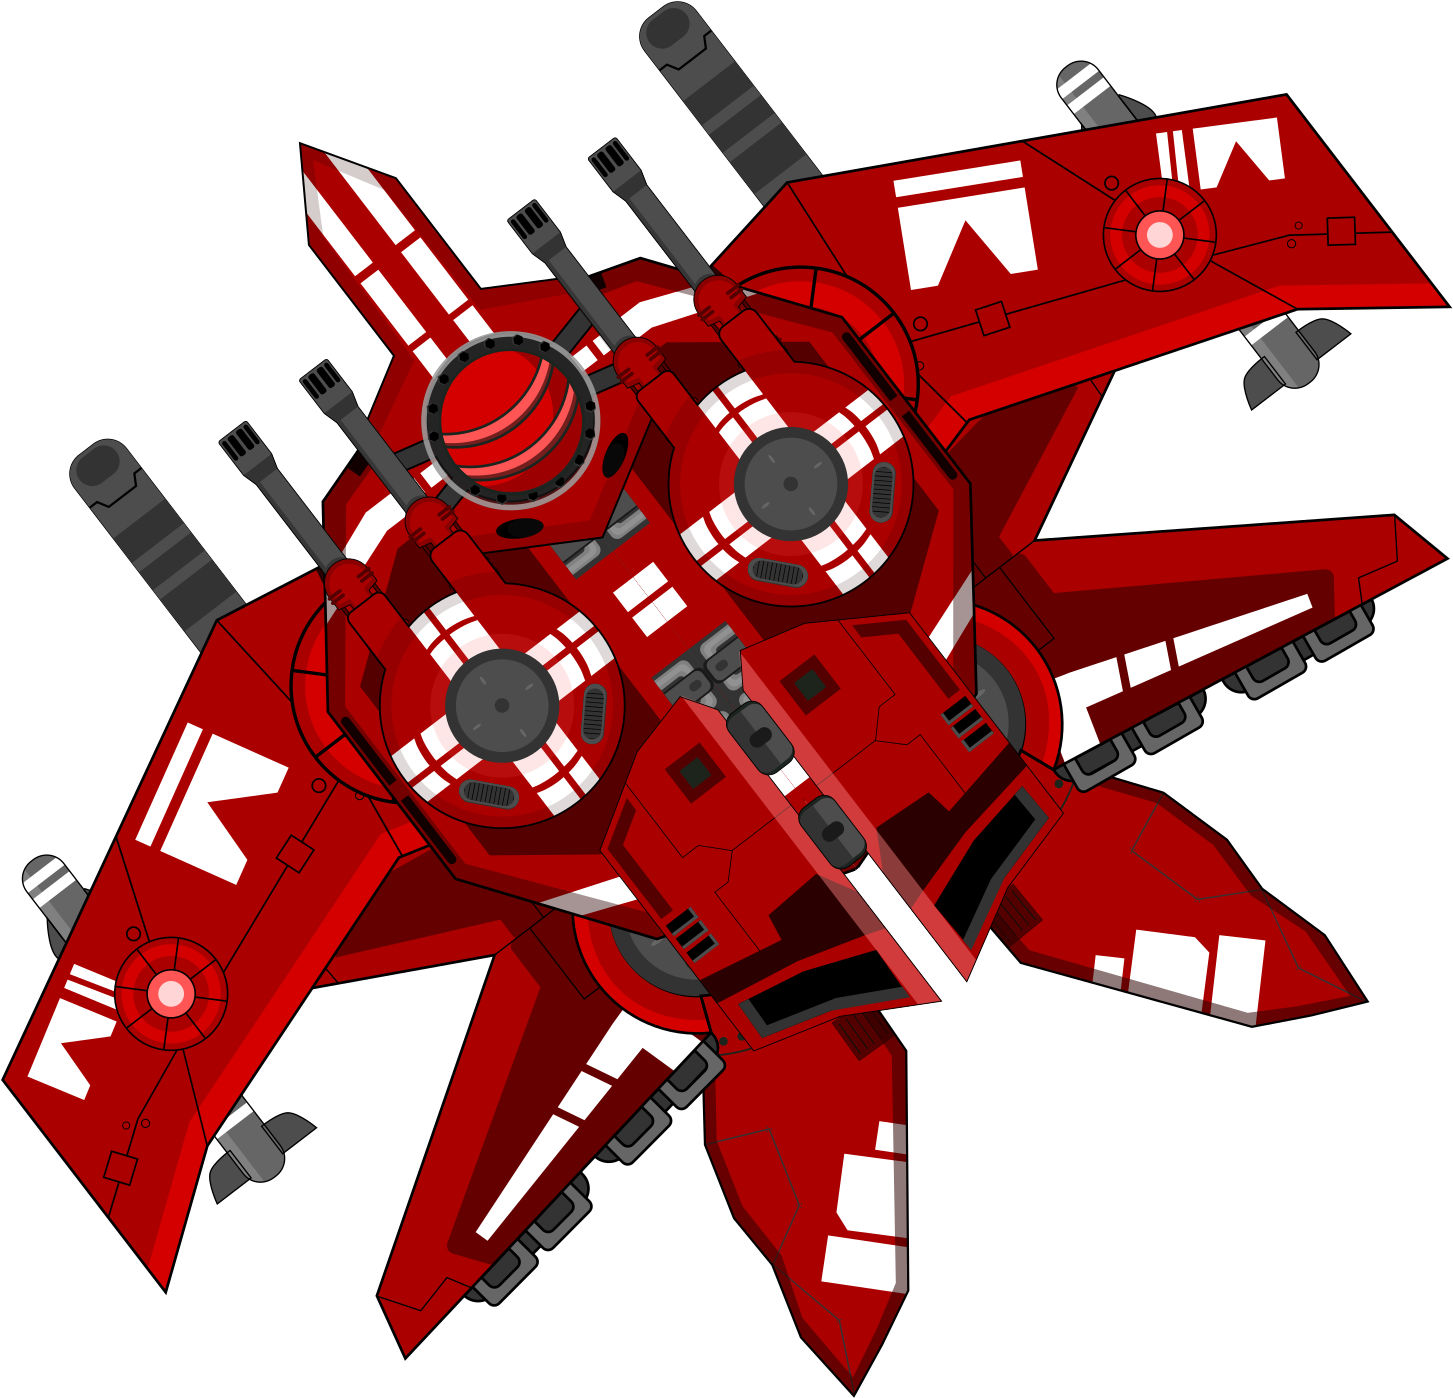 Spaceship clipart red. Hd free unlimited